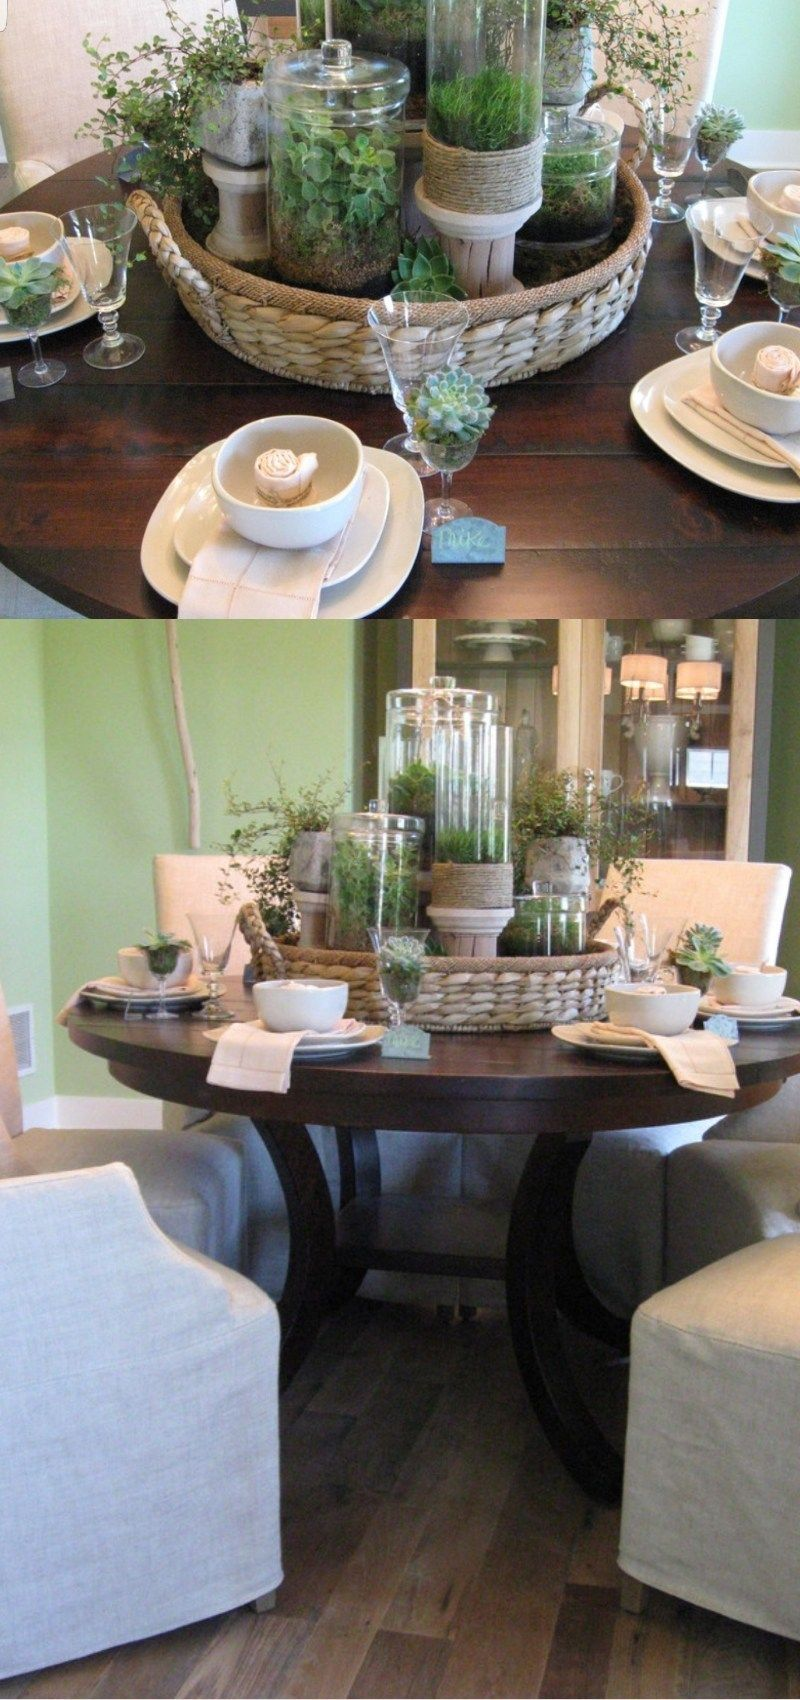 Simple Table Setting Ideas Dining Table Centerpiece Dining